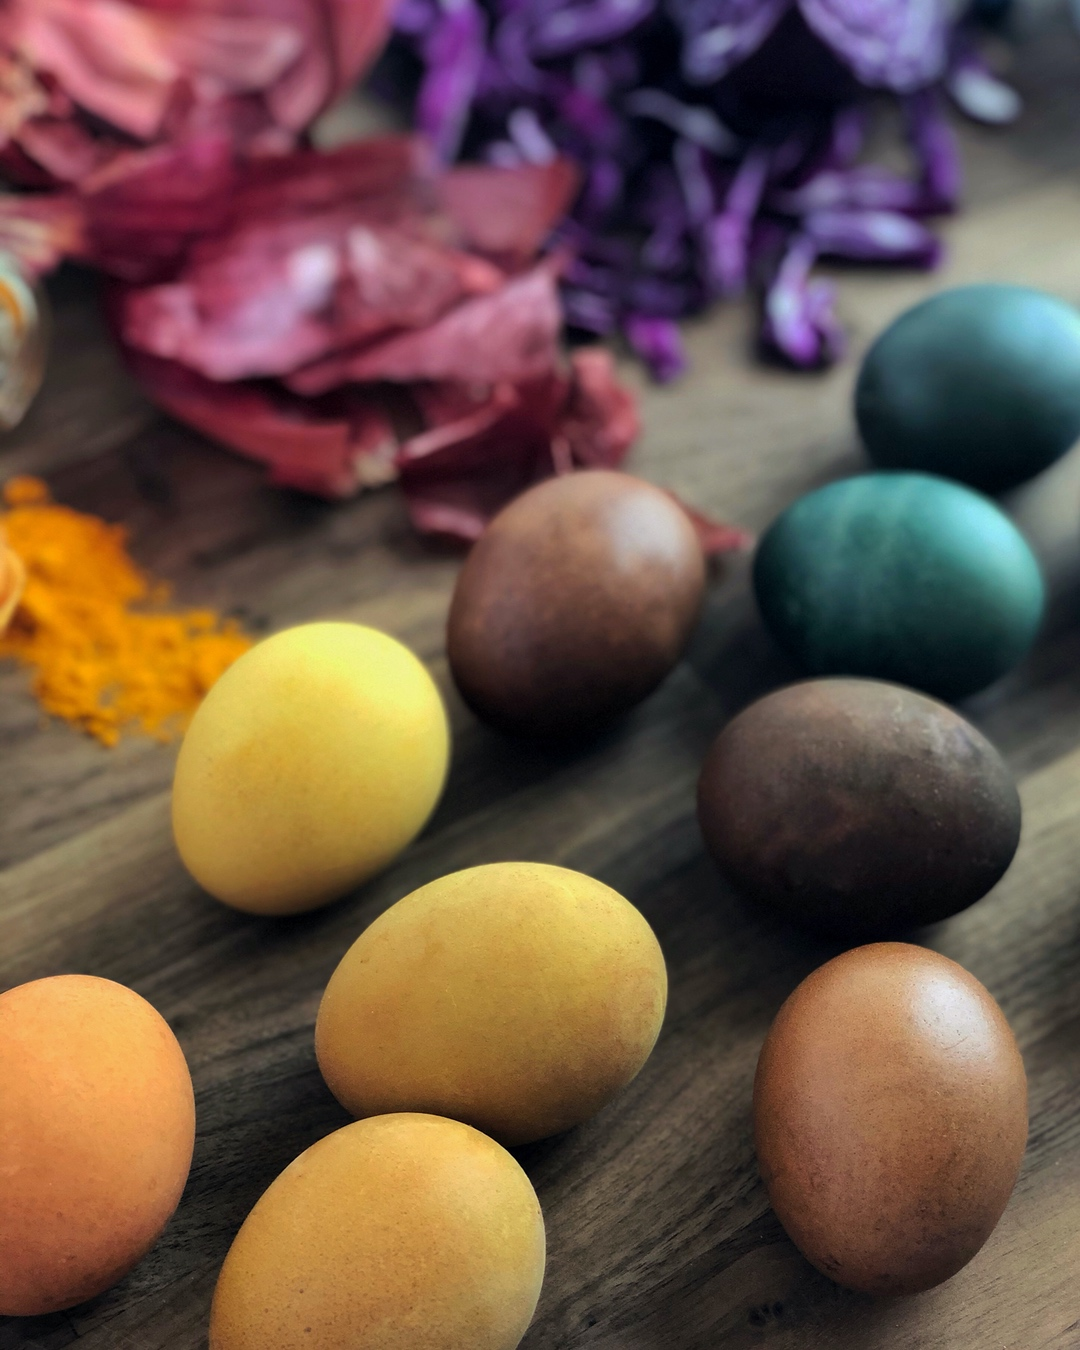 dye-eggs-naturally-ig-colors-1